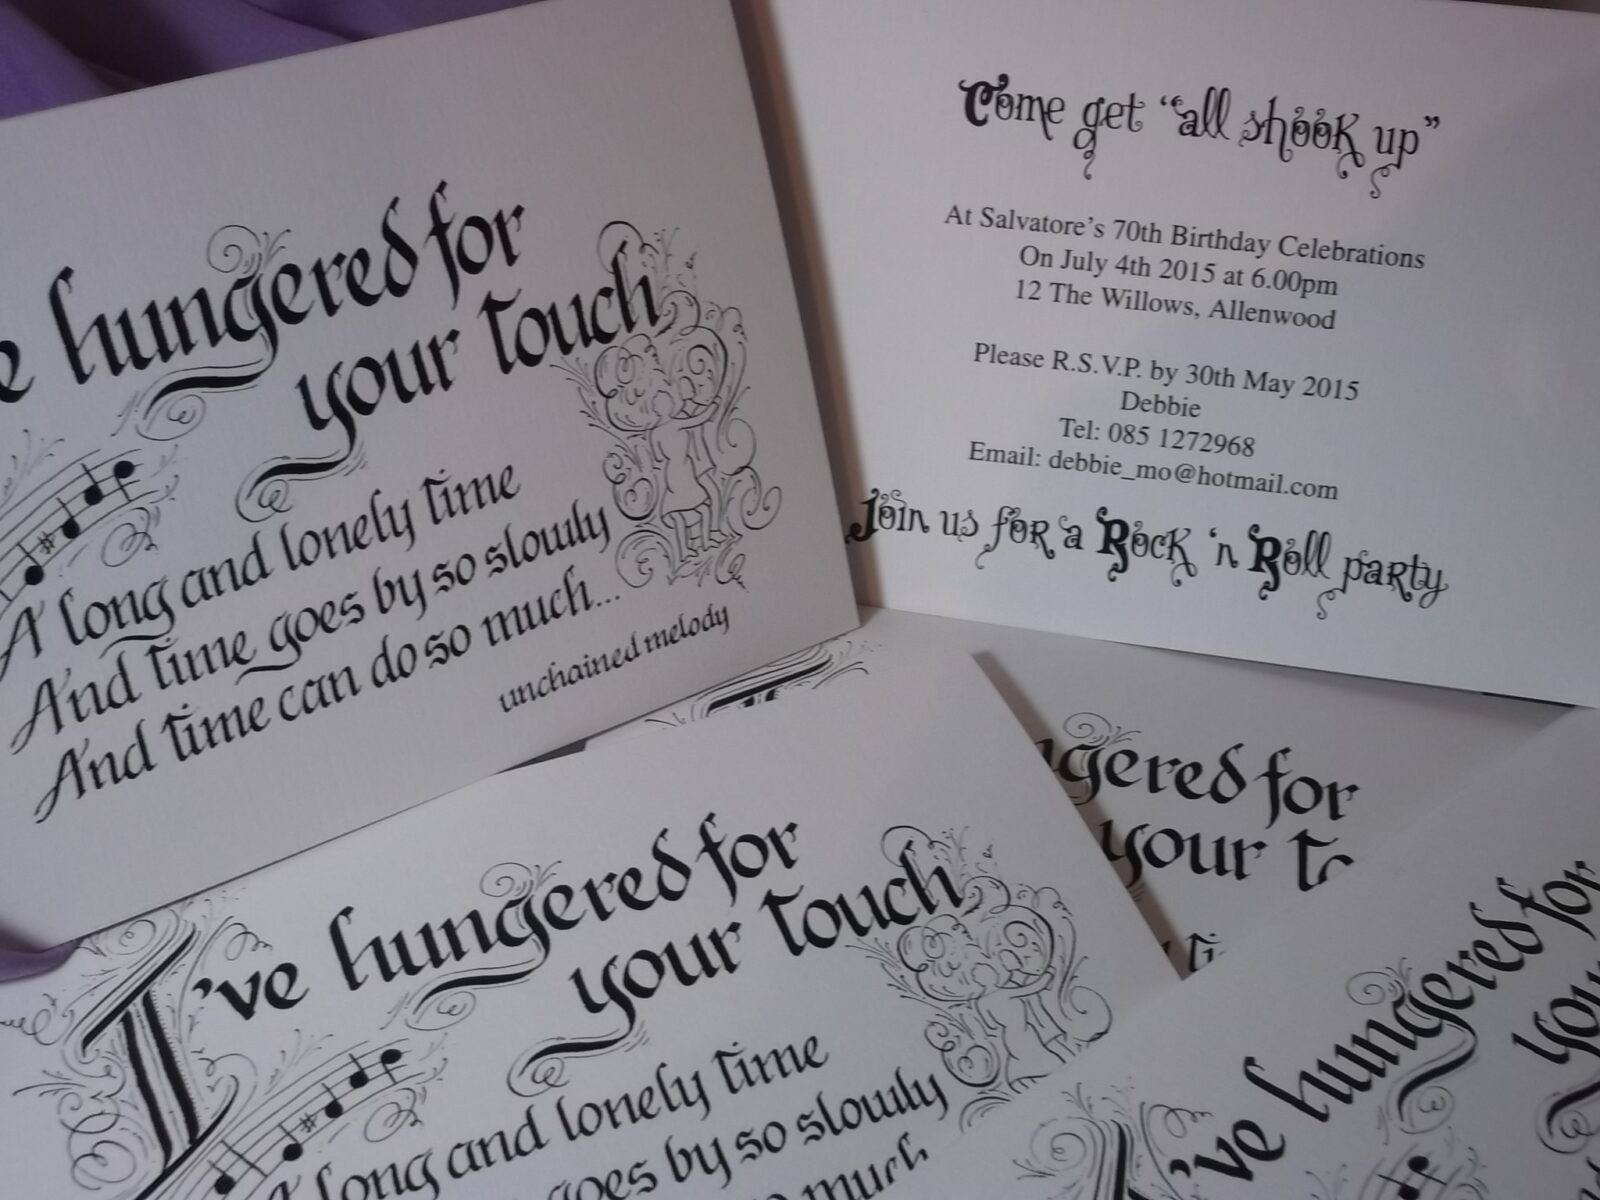 Party Invitation using the words from Elvis song I've hungered for your touch